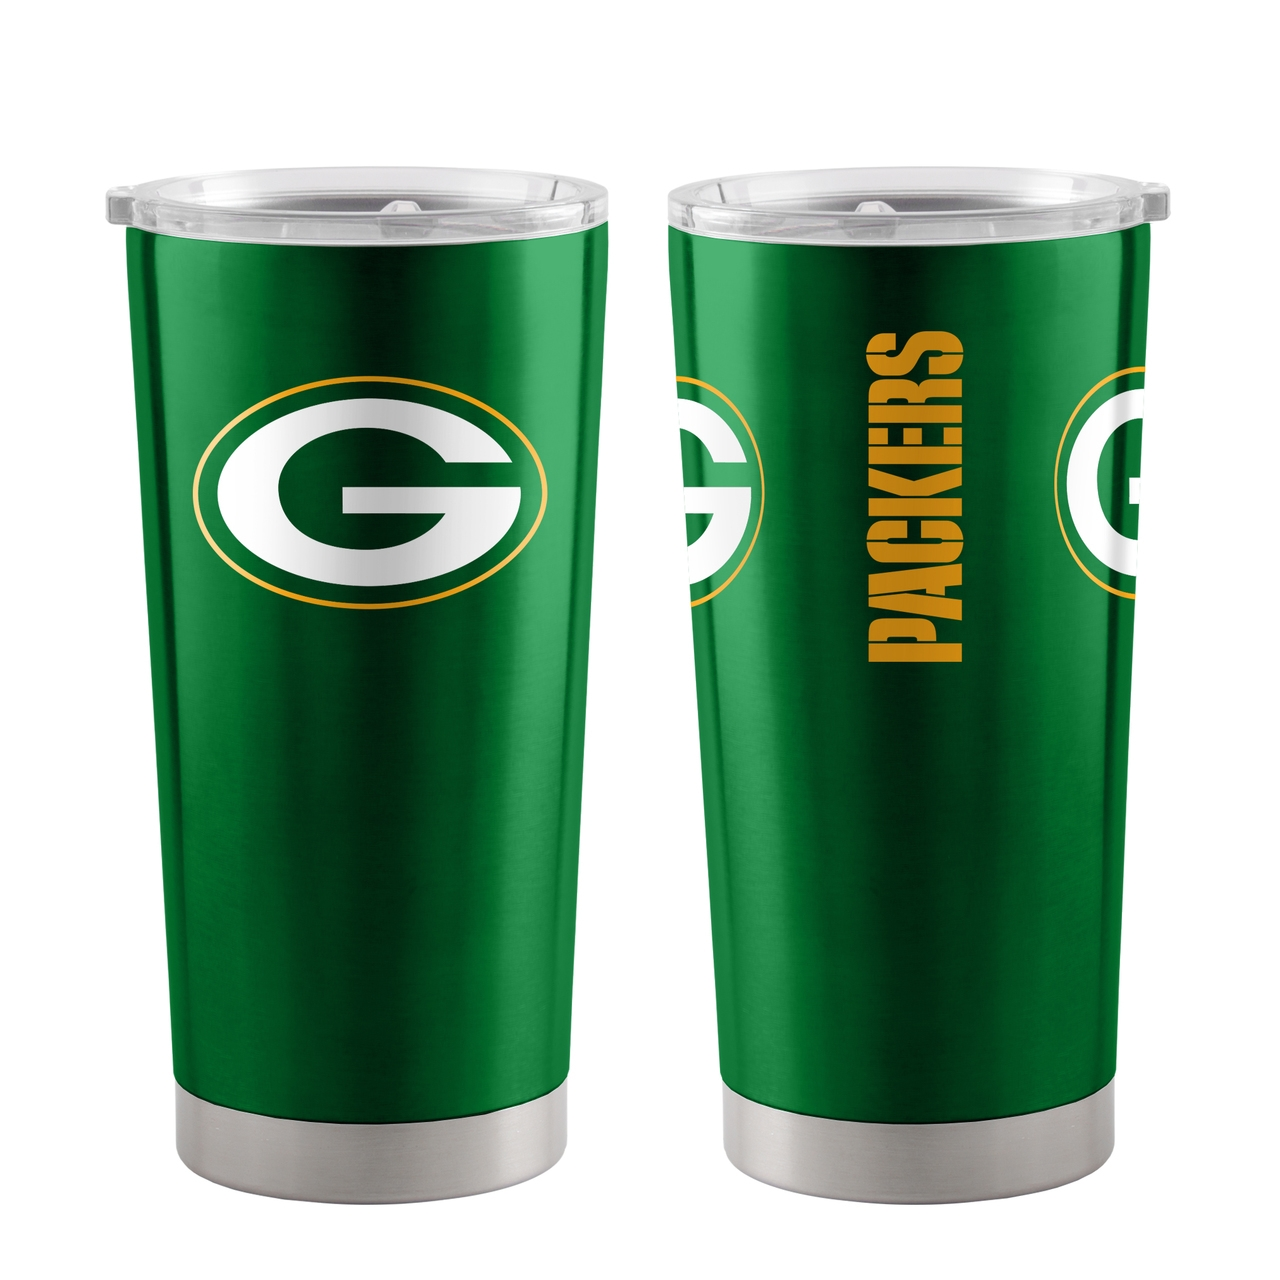 Nfl Football Green Bay Packers Tumblers And Pint Glasses - 8886048752 - Green Bay Packers Travel Tumbler 20oz Ultra Green 8886048752